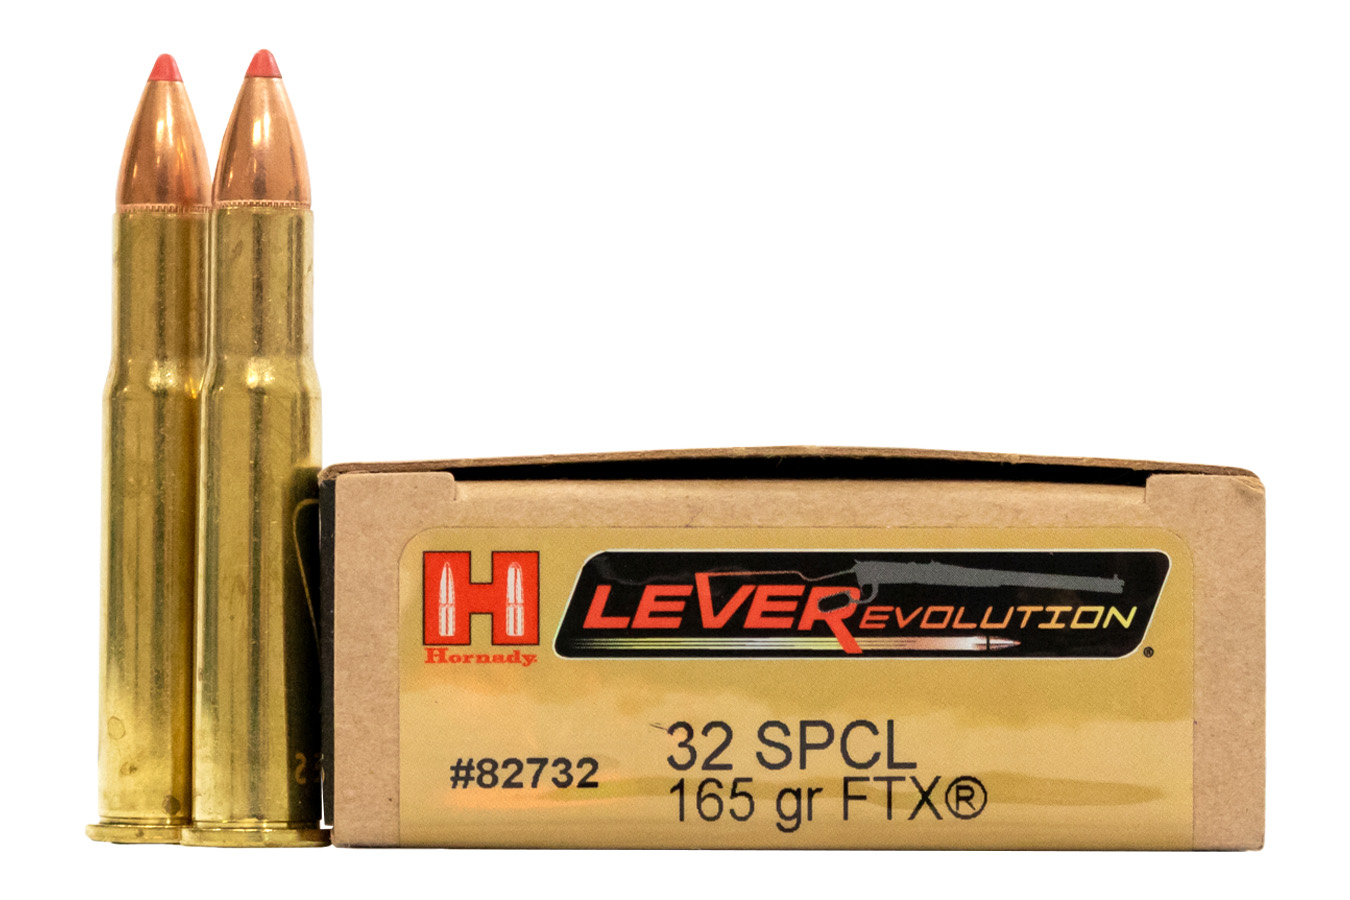 32 WIN SPECIAL 165 GR FTX LEVEREVOLUTION